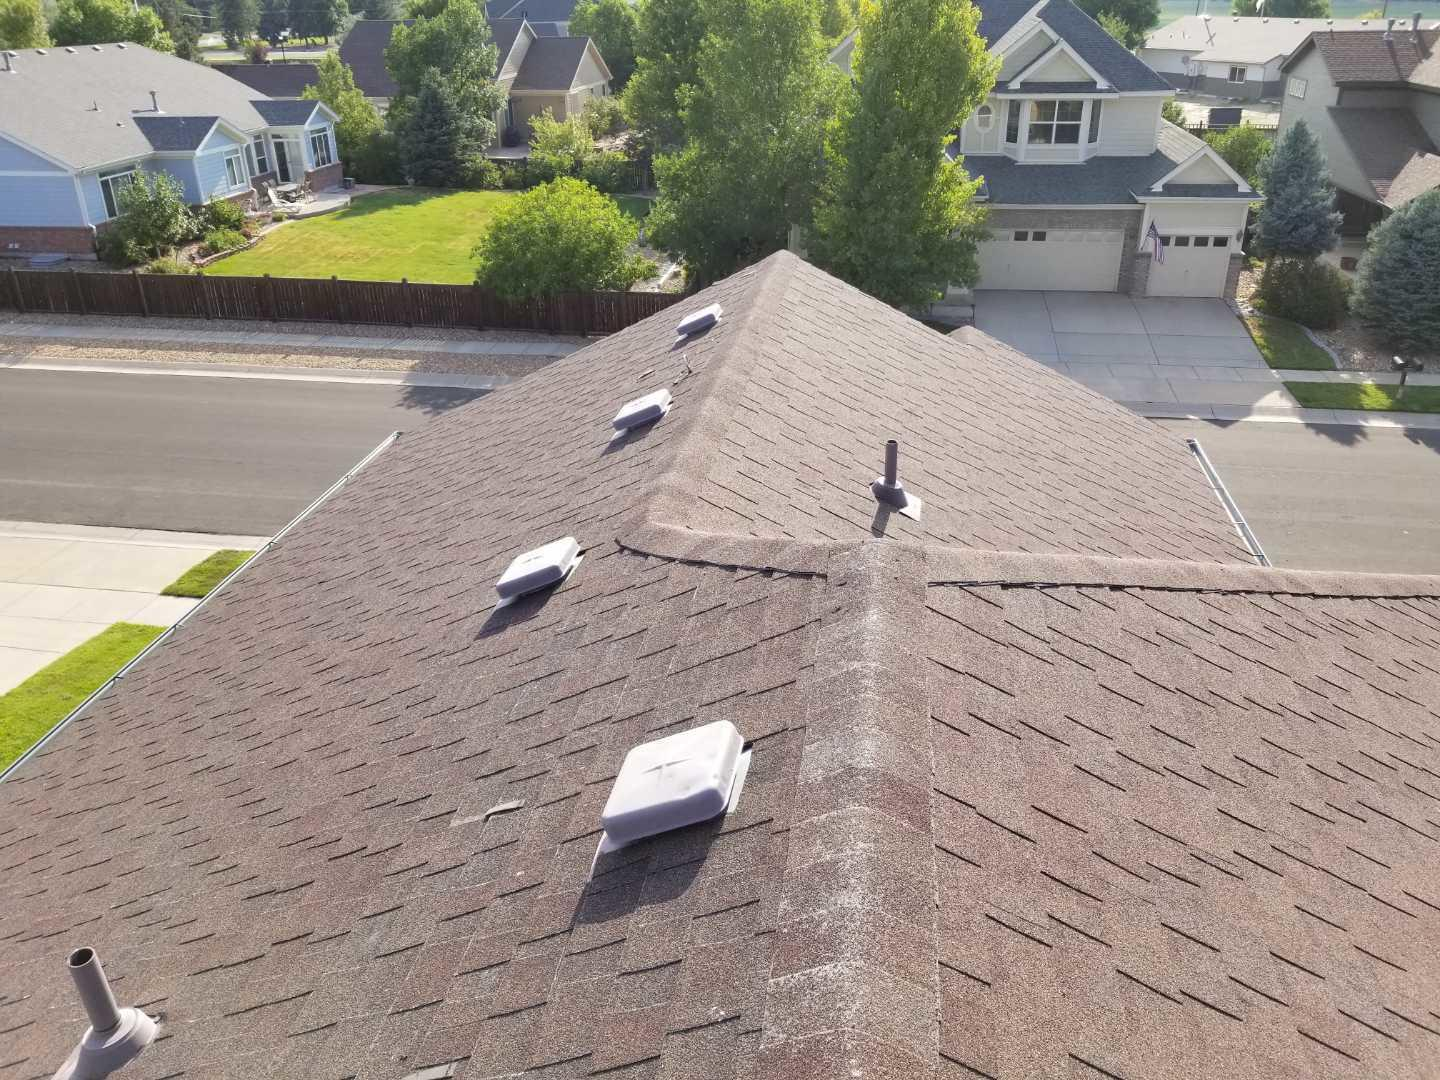 Impact Resistant Roof in Brighton, CO - Before Photo